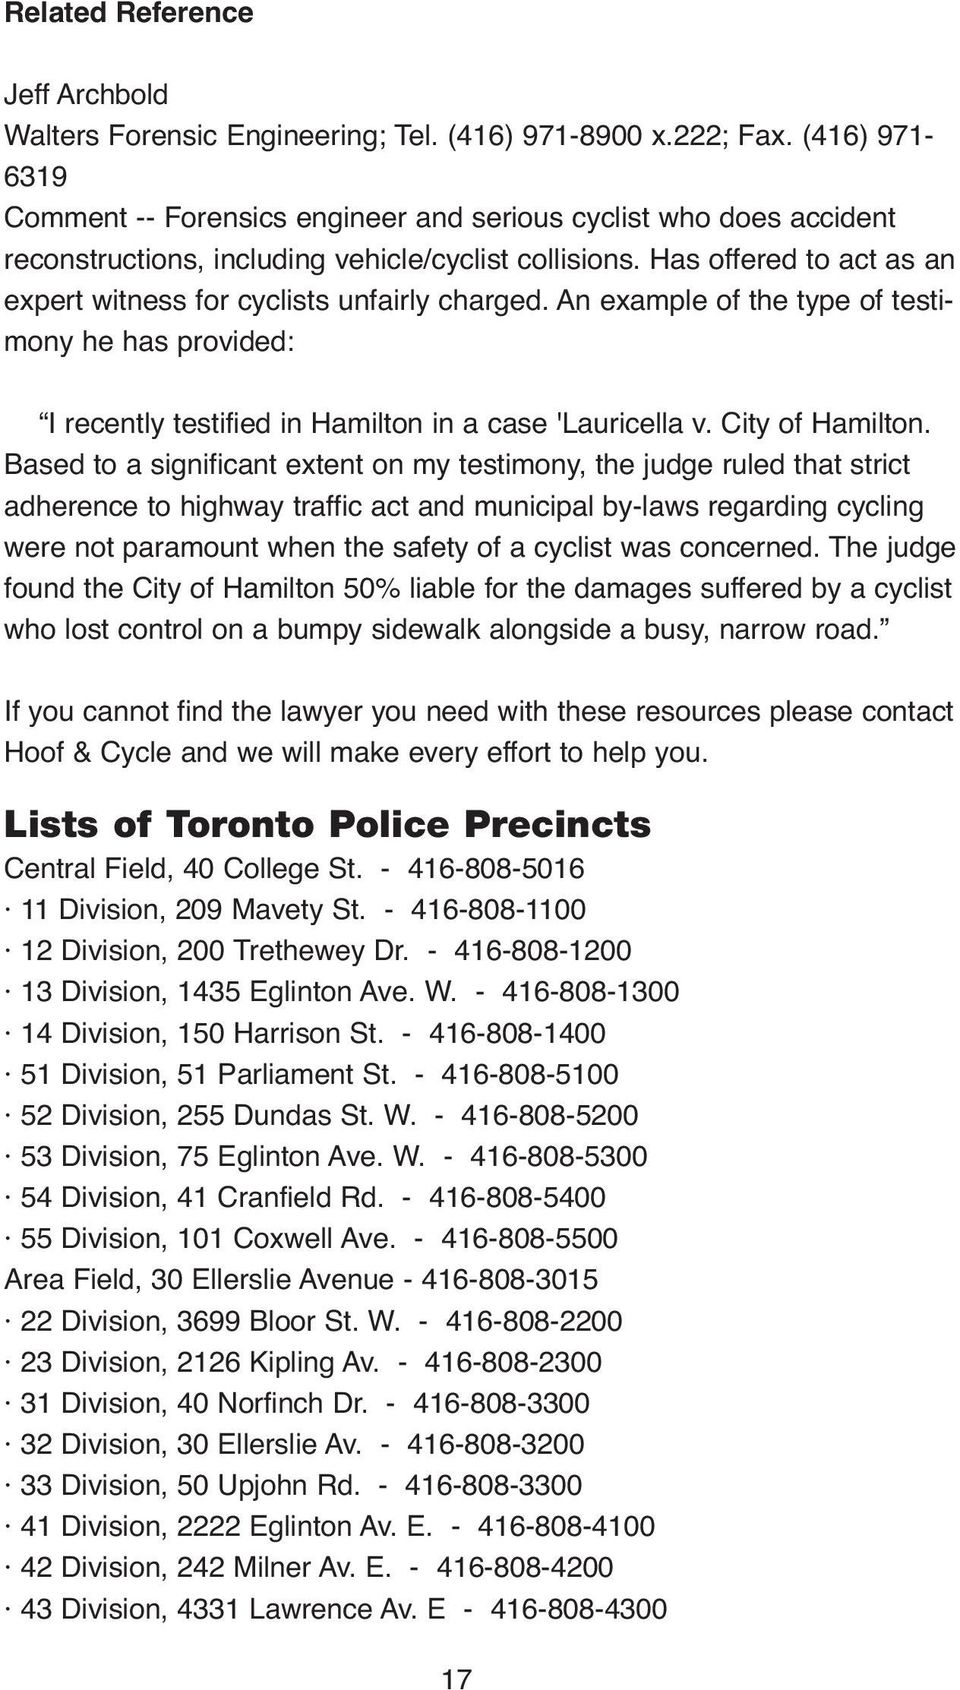 Has offered to act as an expert witness for cyclists unfairly charged. An example of the type of testimony he has provided: I recently testified in Hamilton in a case 'Lauricella v. City of Hamilton.